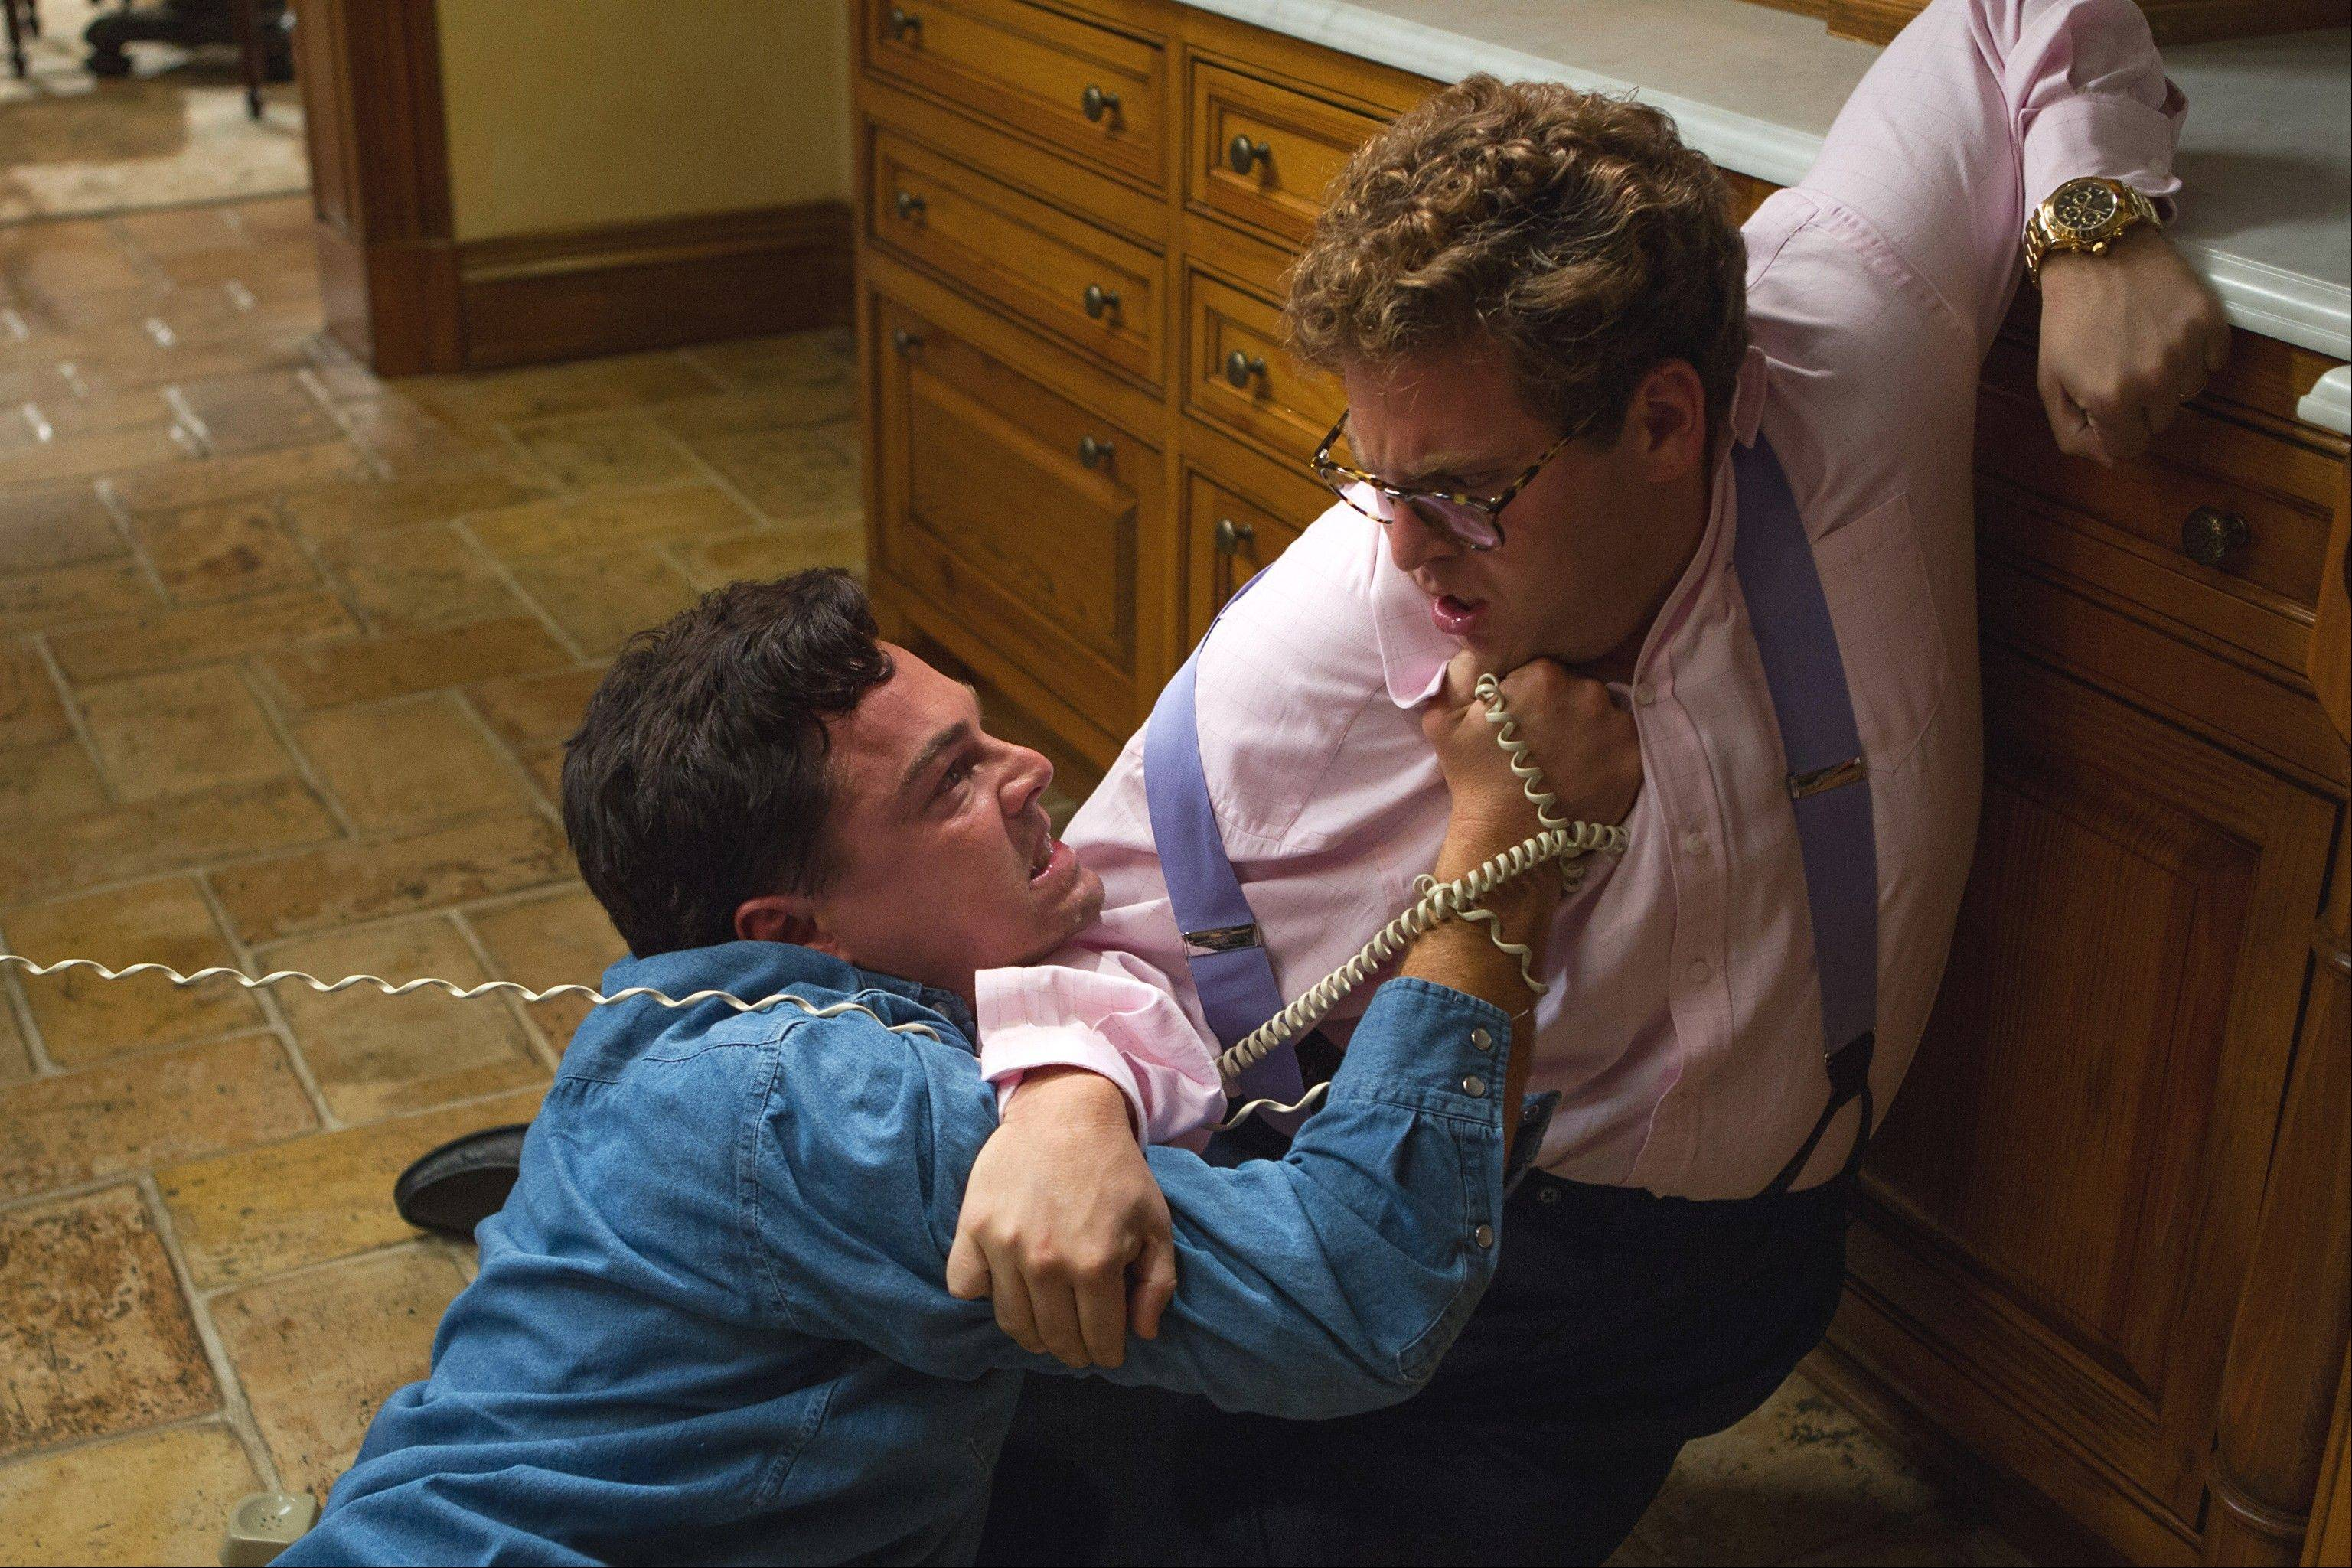 Jordan Belfort (Leonardo DiCaprio) battles Donnie (Jonah Hill) for the telephone in one of many comic sequences in Martin Scorsese�s fact-based movie �The Wolf of Wall Street.�